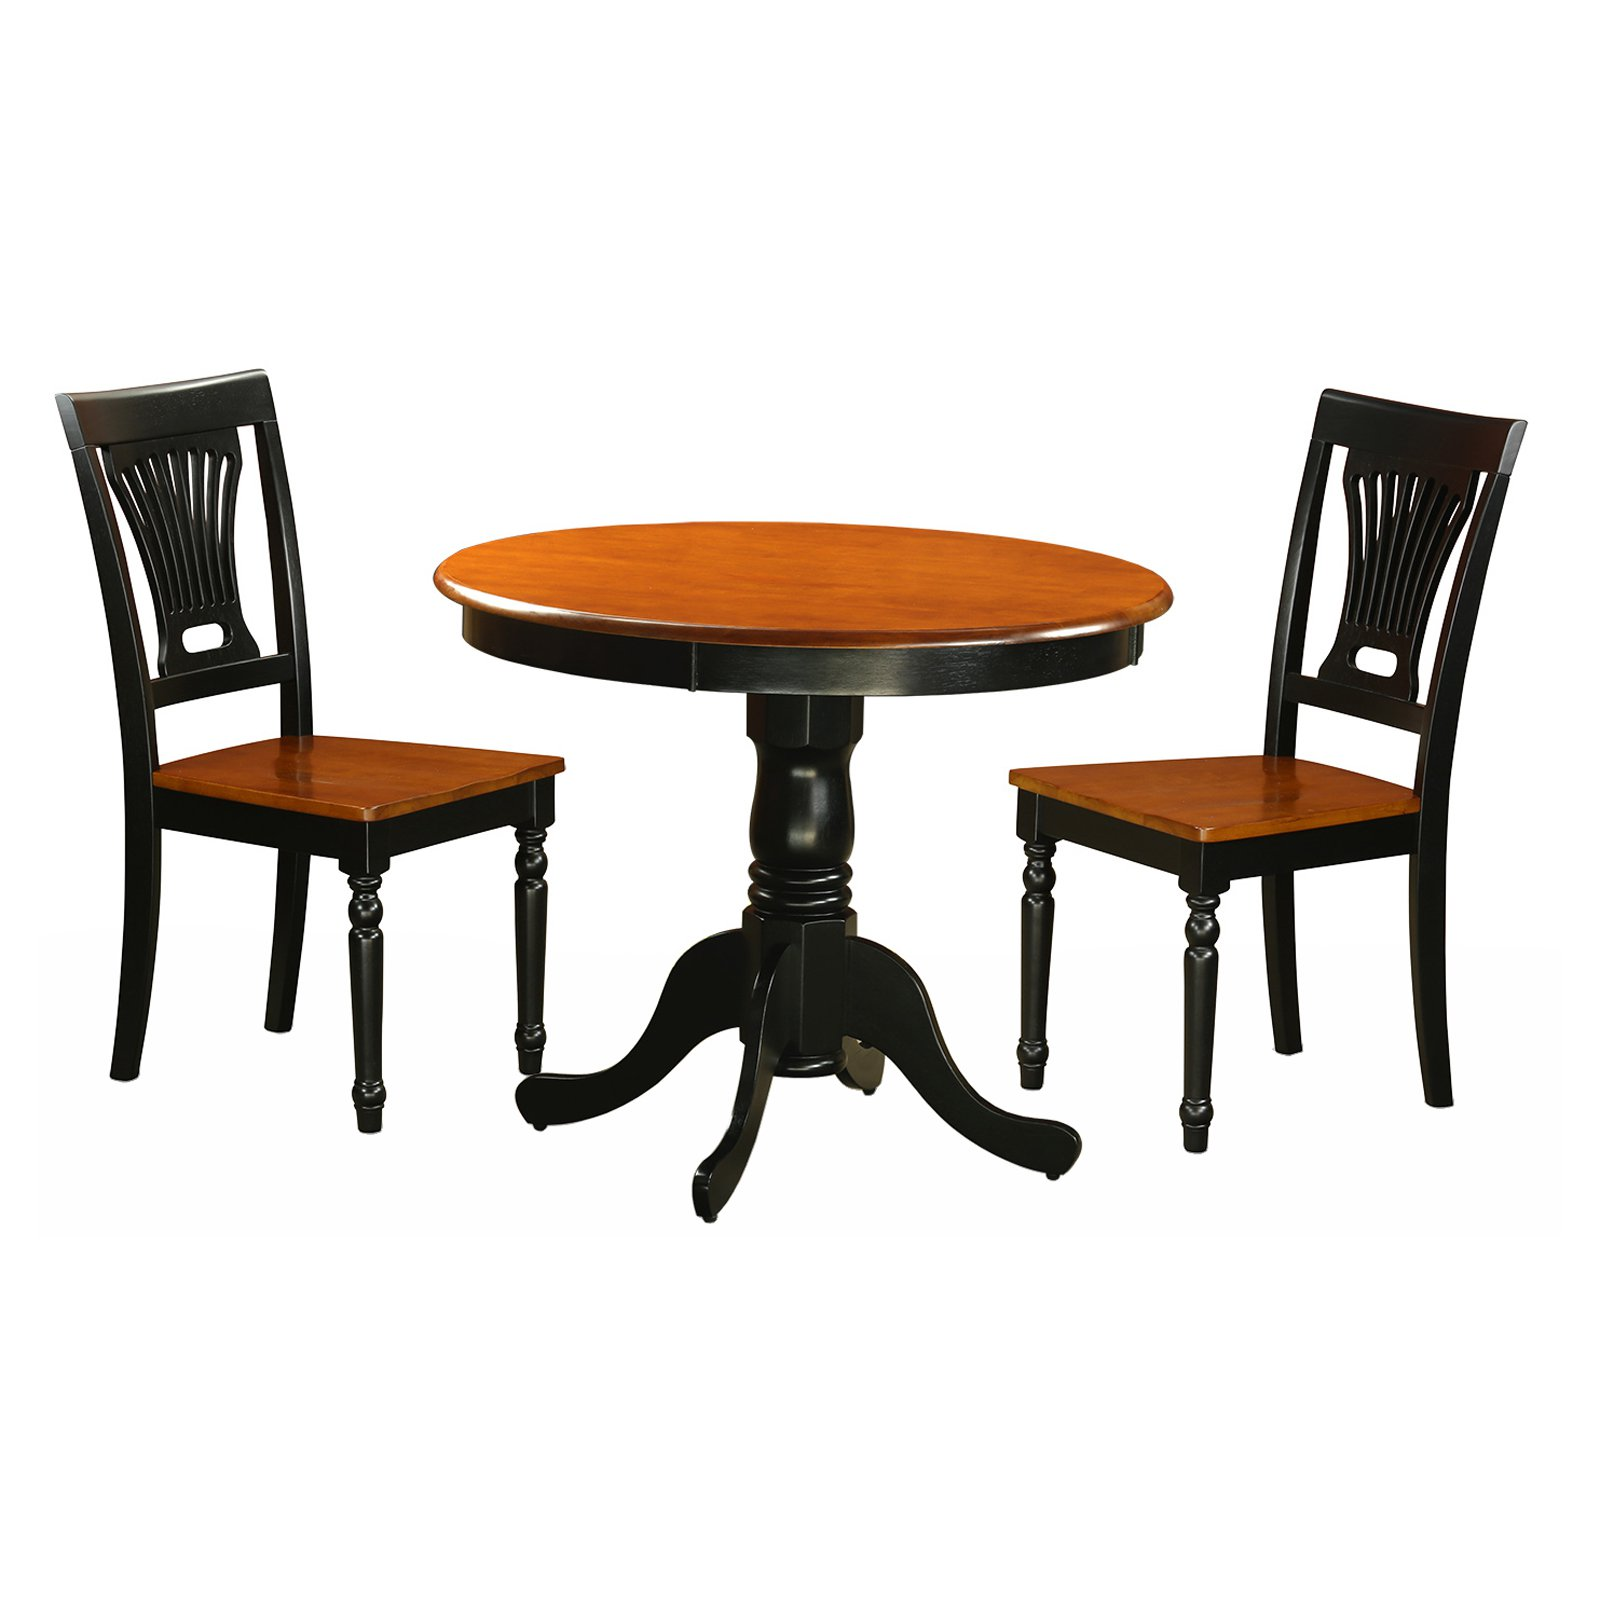 East West Furniture Antique 3 Piece Pedestal Round Dining Table Set with Plainville Wooden Seat Chairs